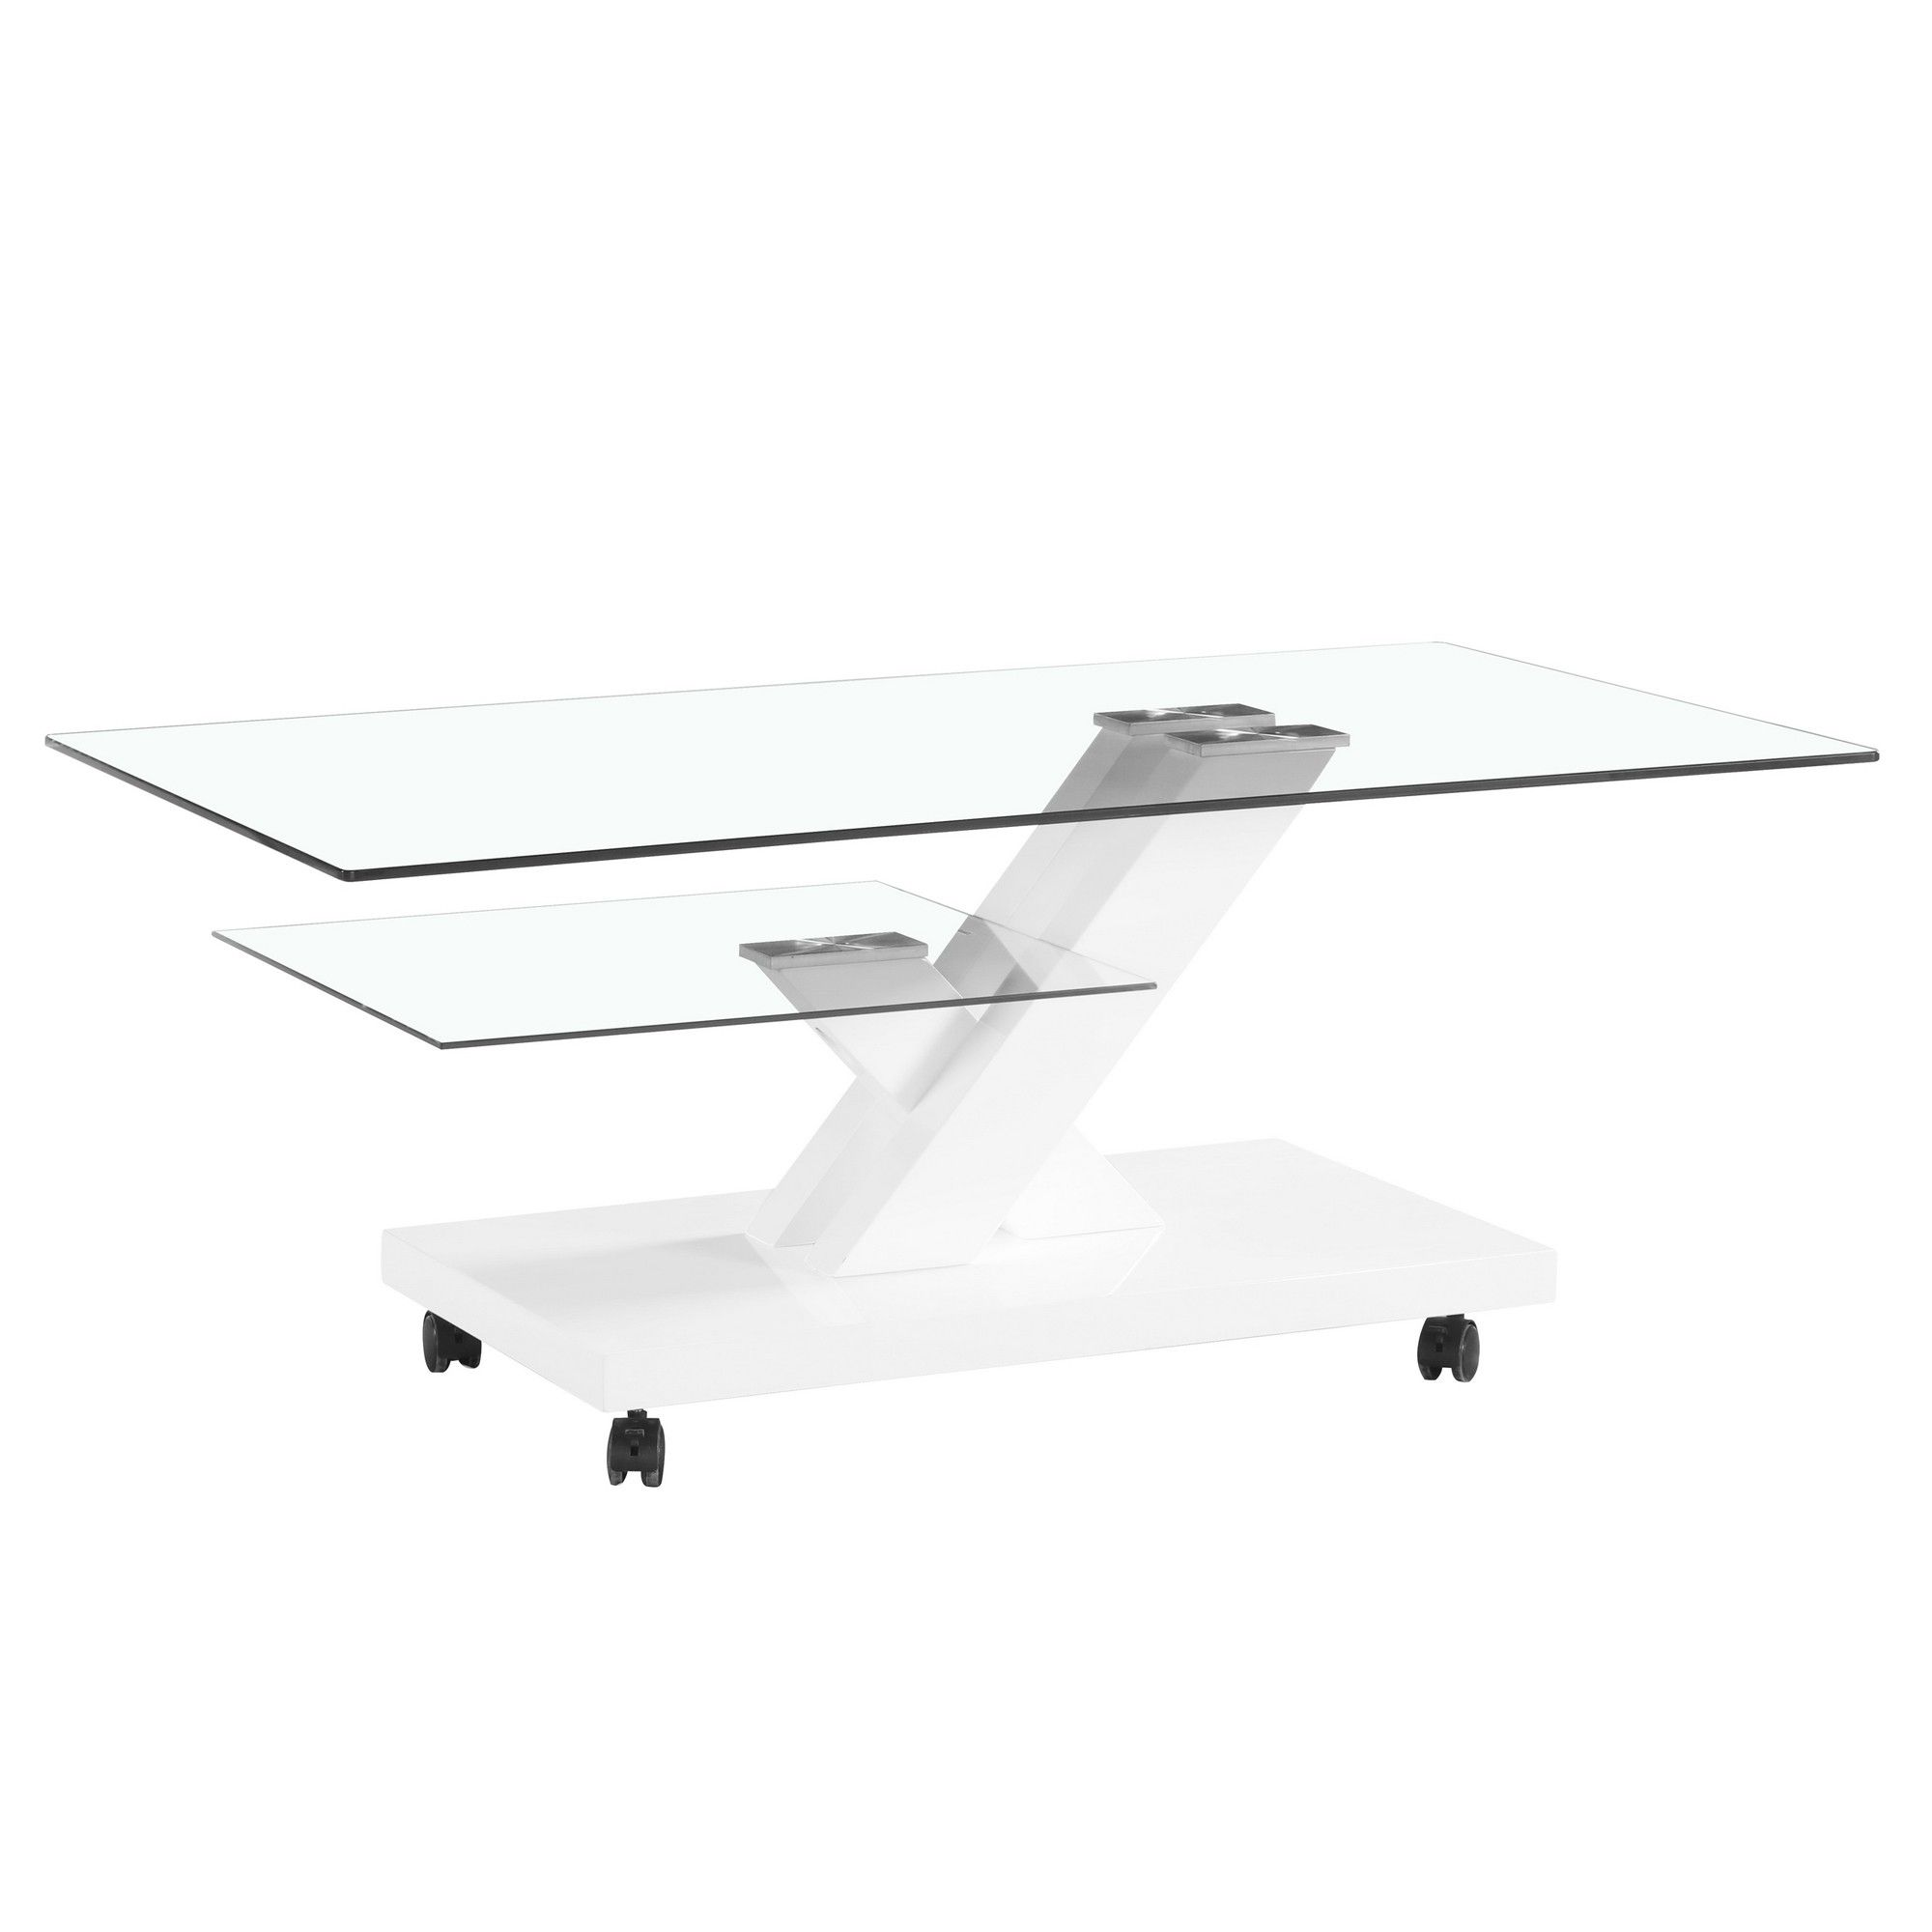 Pin By Gravity Decor On Coffee Tables Stylish Coffee Table Glass Coffee Table Coffee Table Design [ 2000 x 2000 Pixel ]